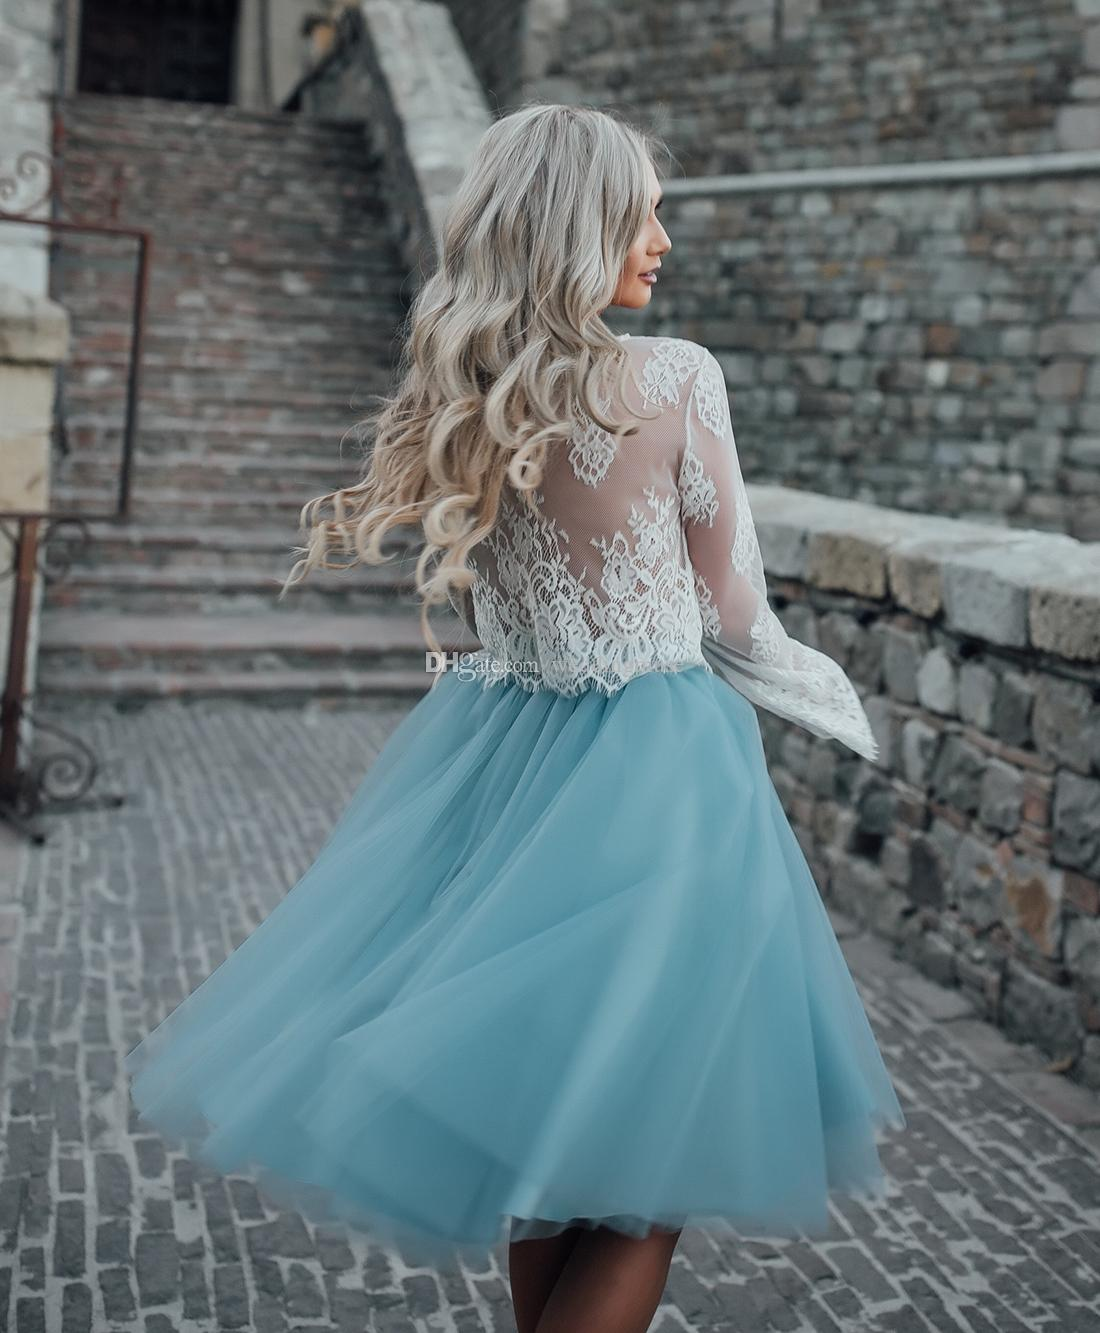 Plus Size Knee Length Two Pieces Prom Dresses Lace Evening Dresses Layers Light Sky Blue Mini Tulle Tutu Skirt Party Gowns